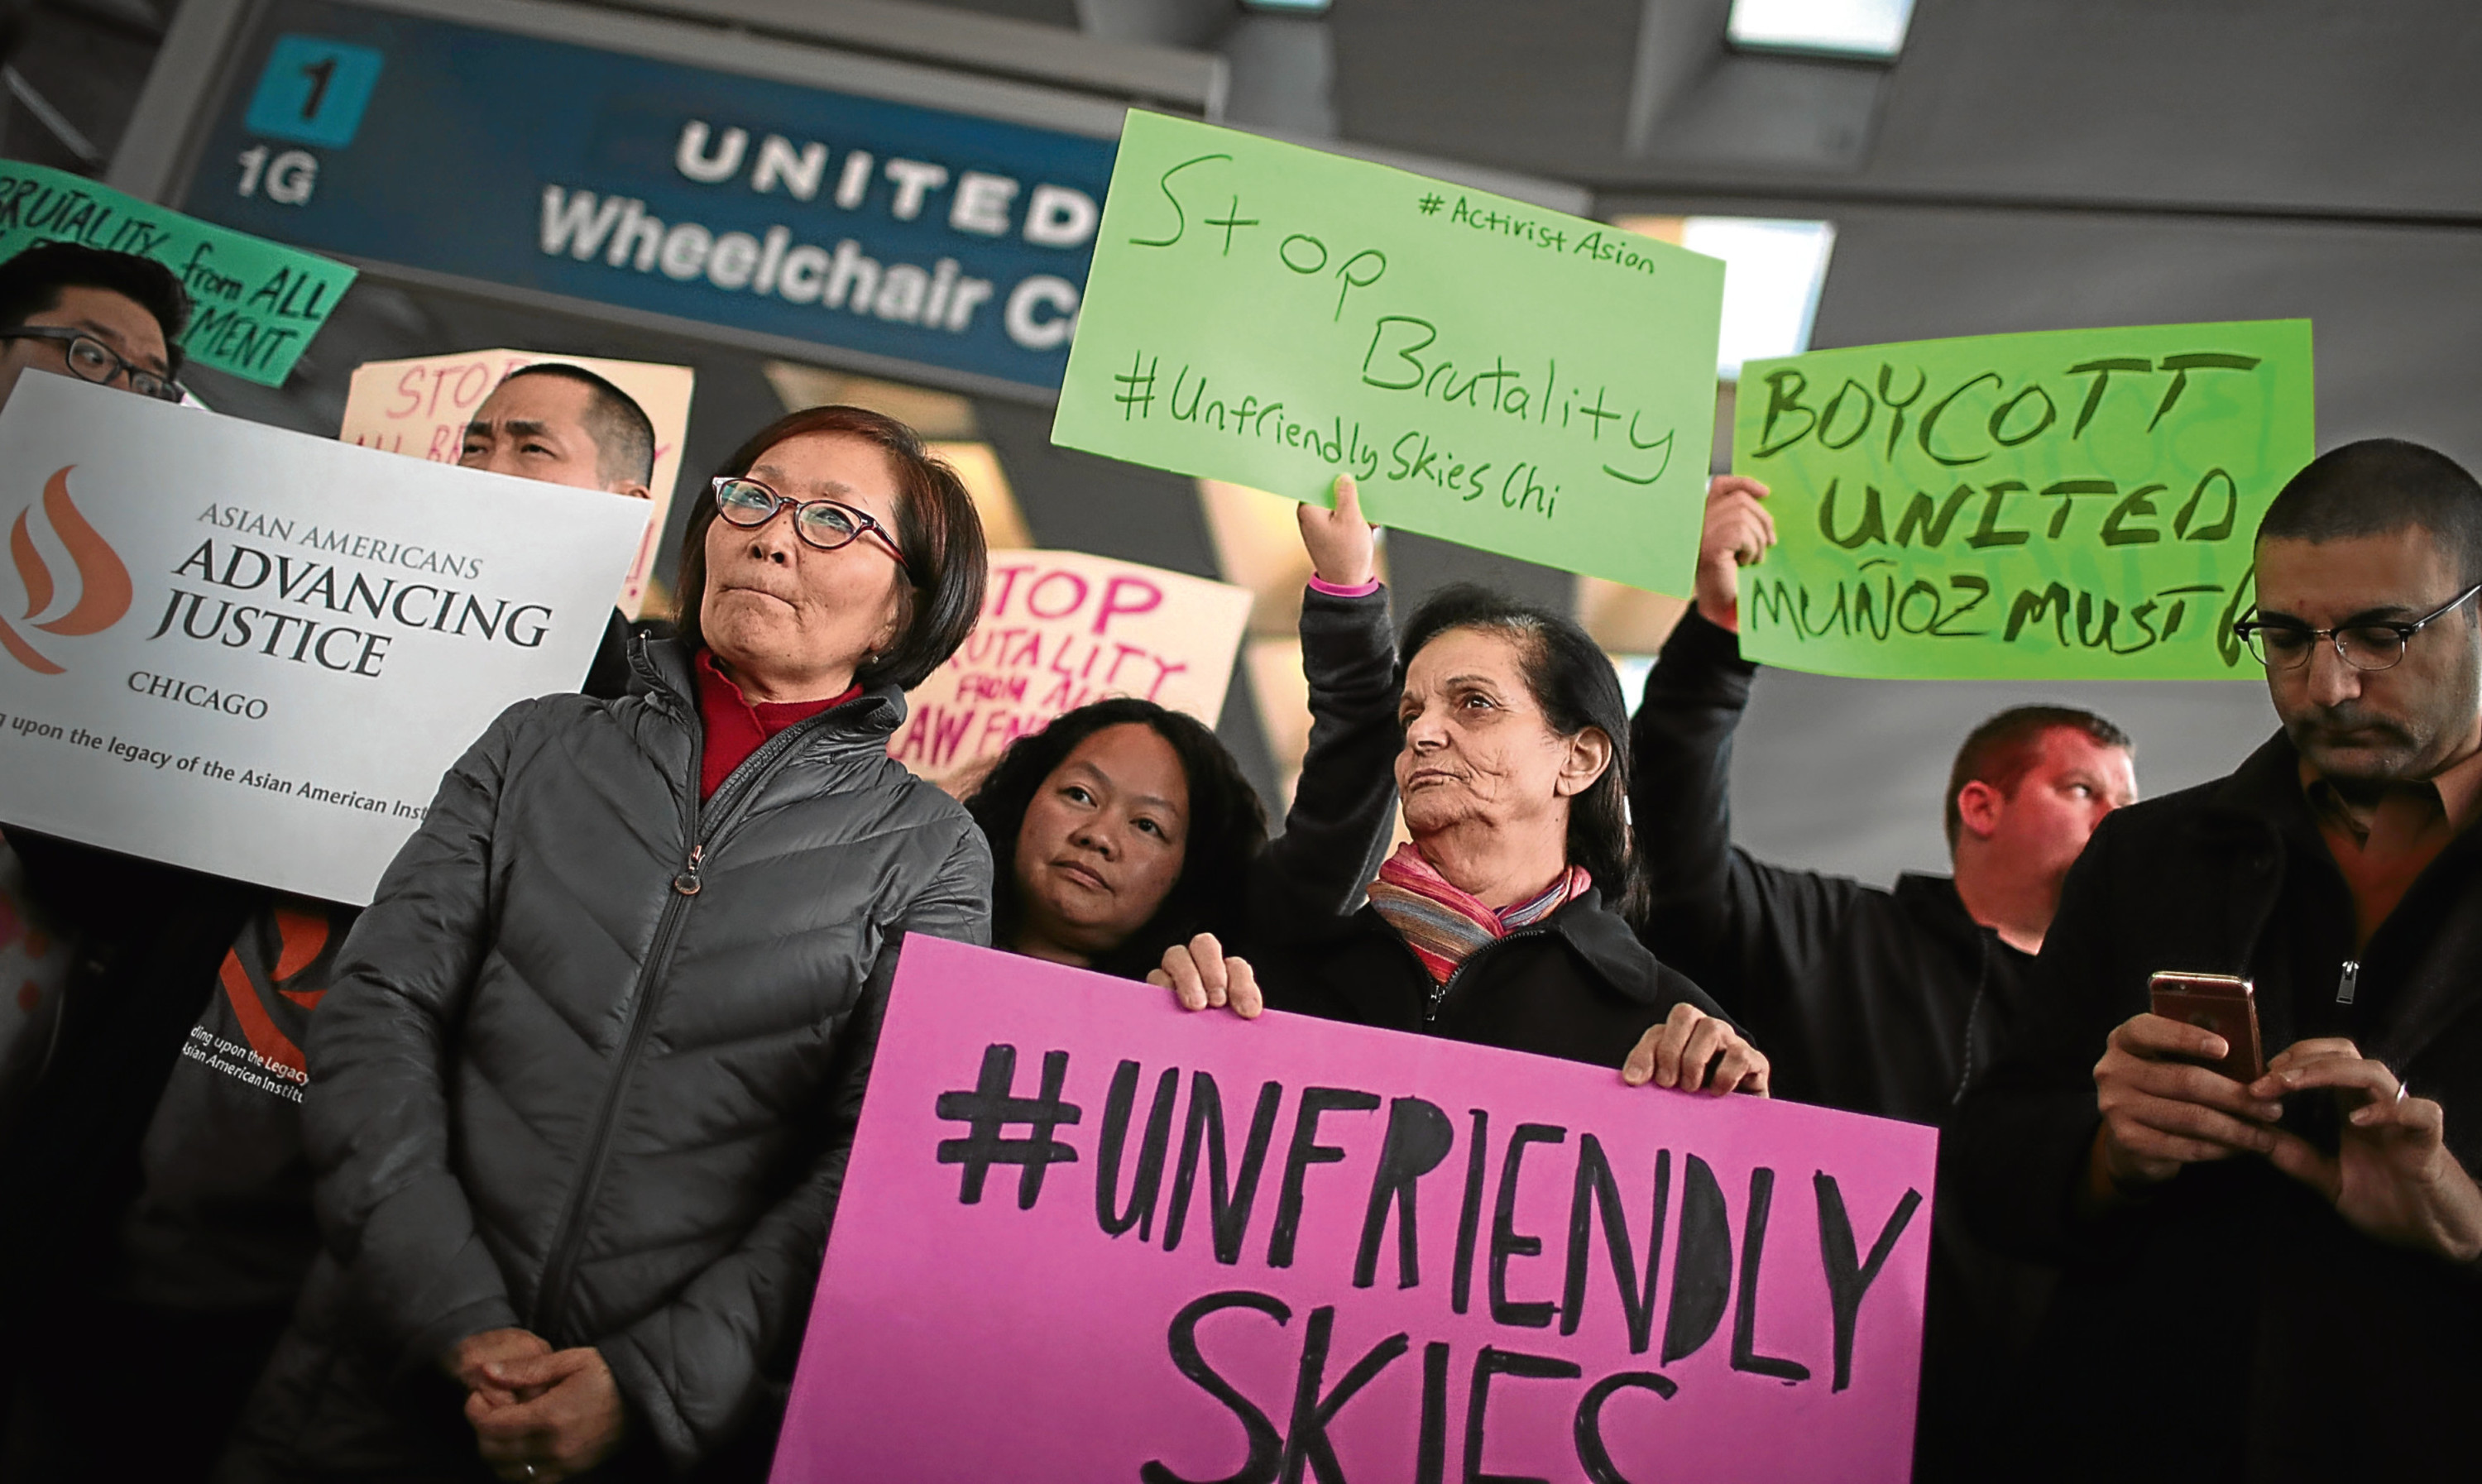 United Airlines treatment of a passenger sparked protests